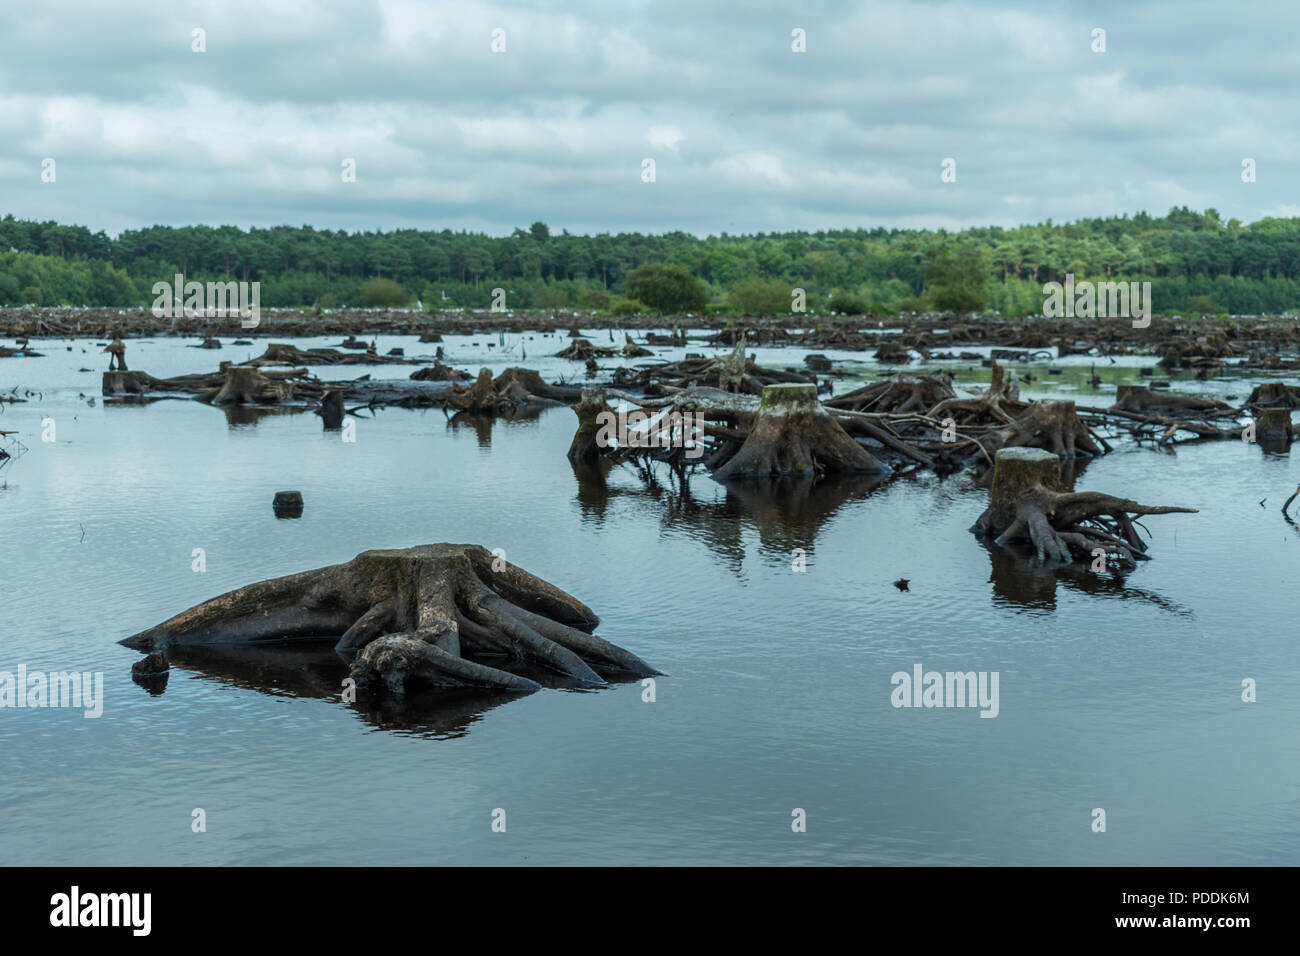 Blakemere Moss in Delamere Forest, Cheshire, UK. After a long spell of hot weather the water level is low, revealing hundreds of tree stumps. Stock Photo